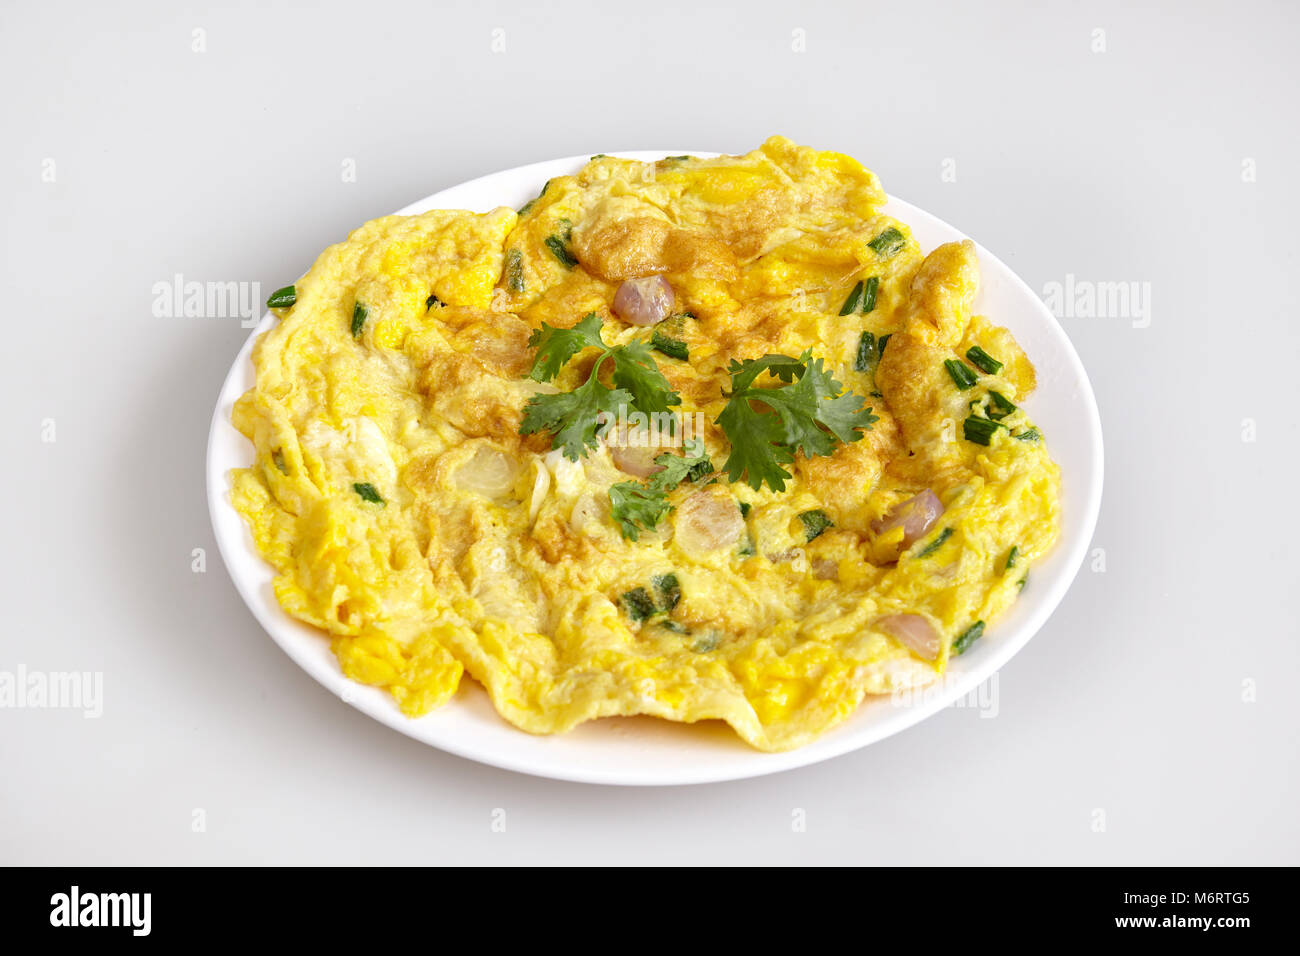 Omelet, Thai local food, with simple ingredient with herb parsley, healthy diet, white background - top view - Stock Image